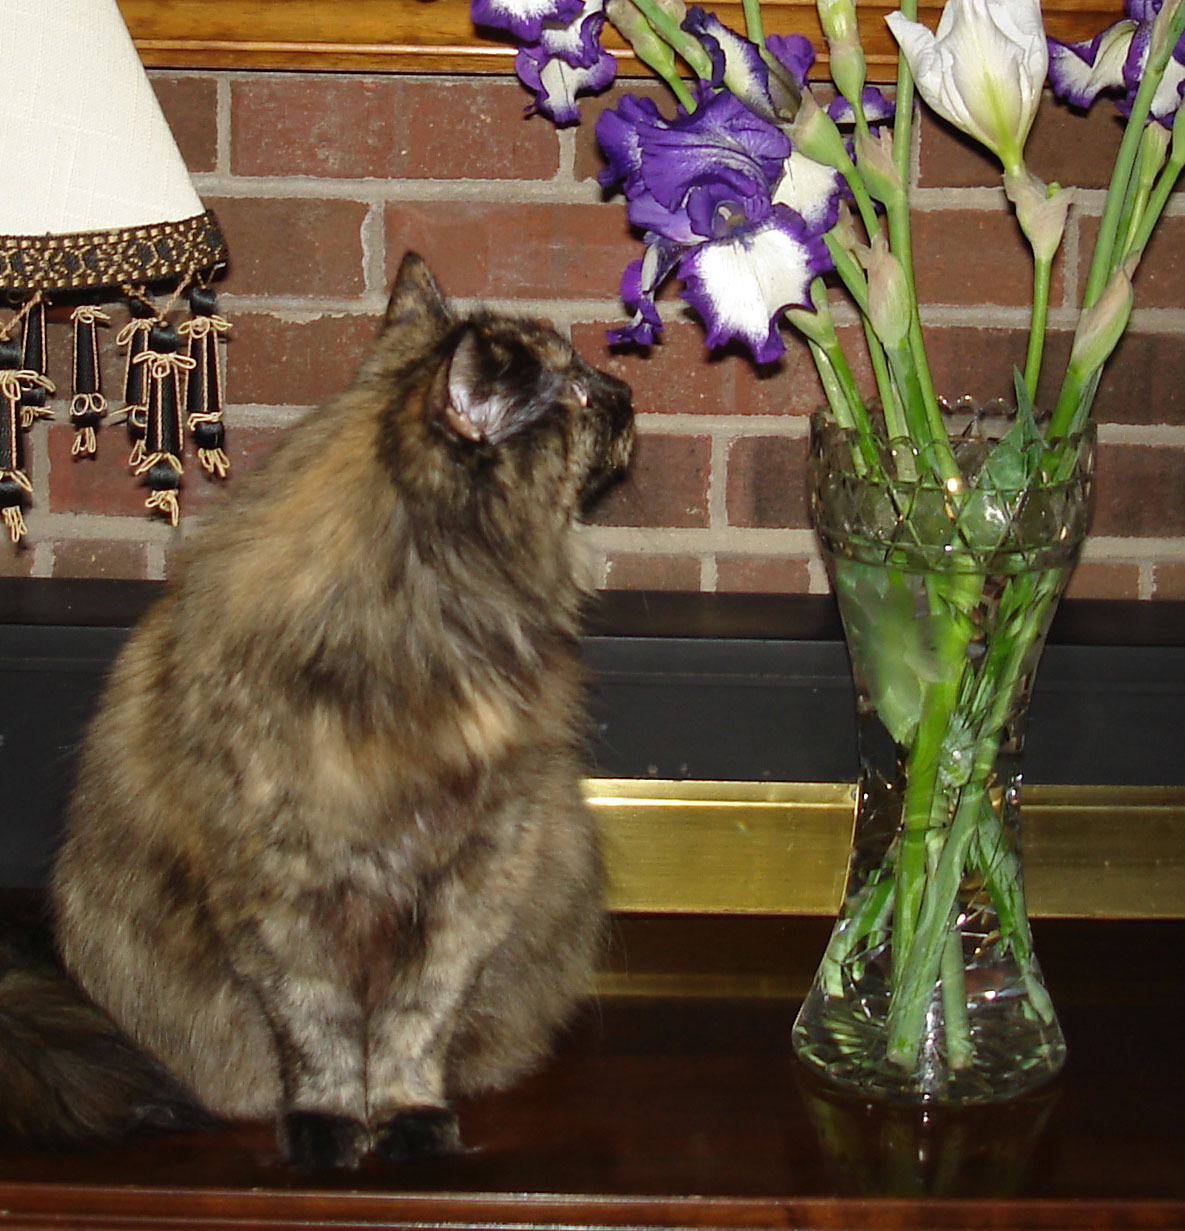 Cute cat Savannah is enjoying smelling the flowers brought in from the garden.